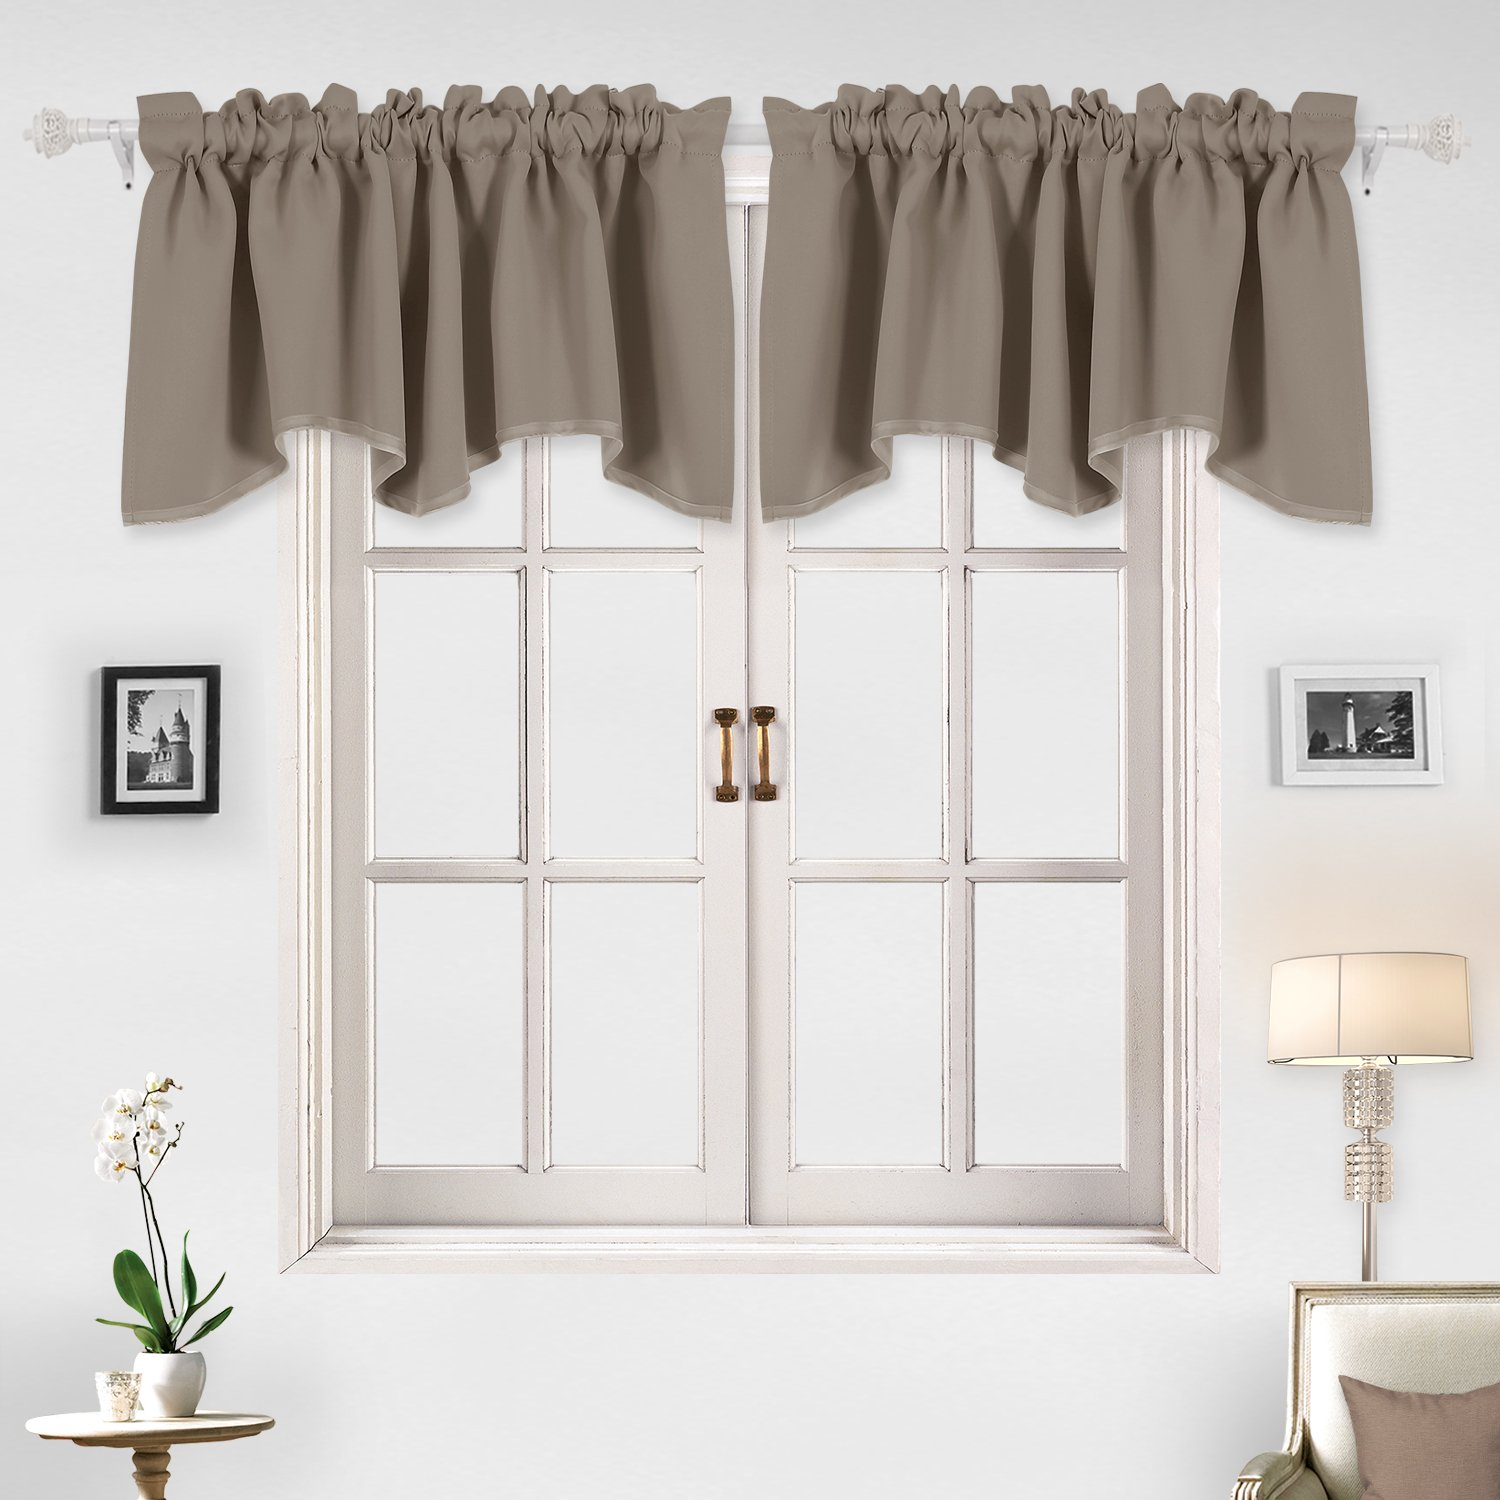 Deconovo Decorative Rod Pocket Blackout Curtains Valances Window Treatments Scalloped Blackout Drapes for Study 52 X 18 Inch Khaki 1 Panel